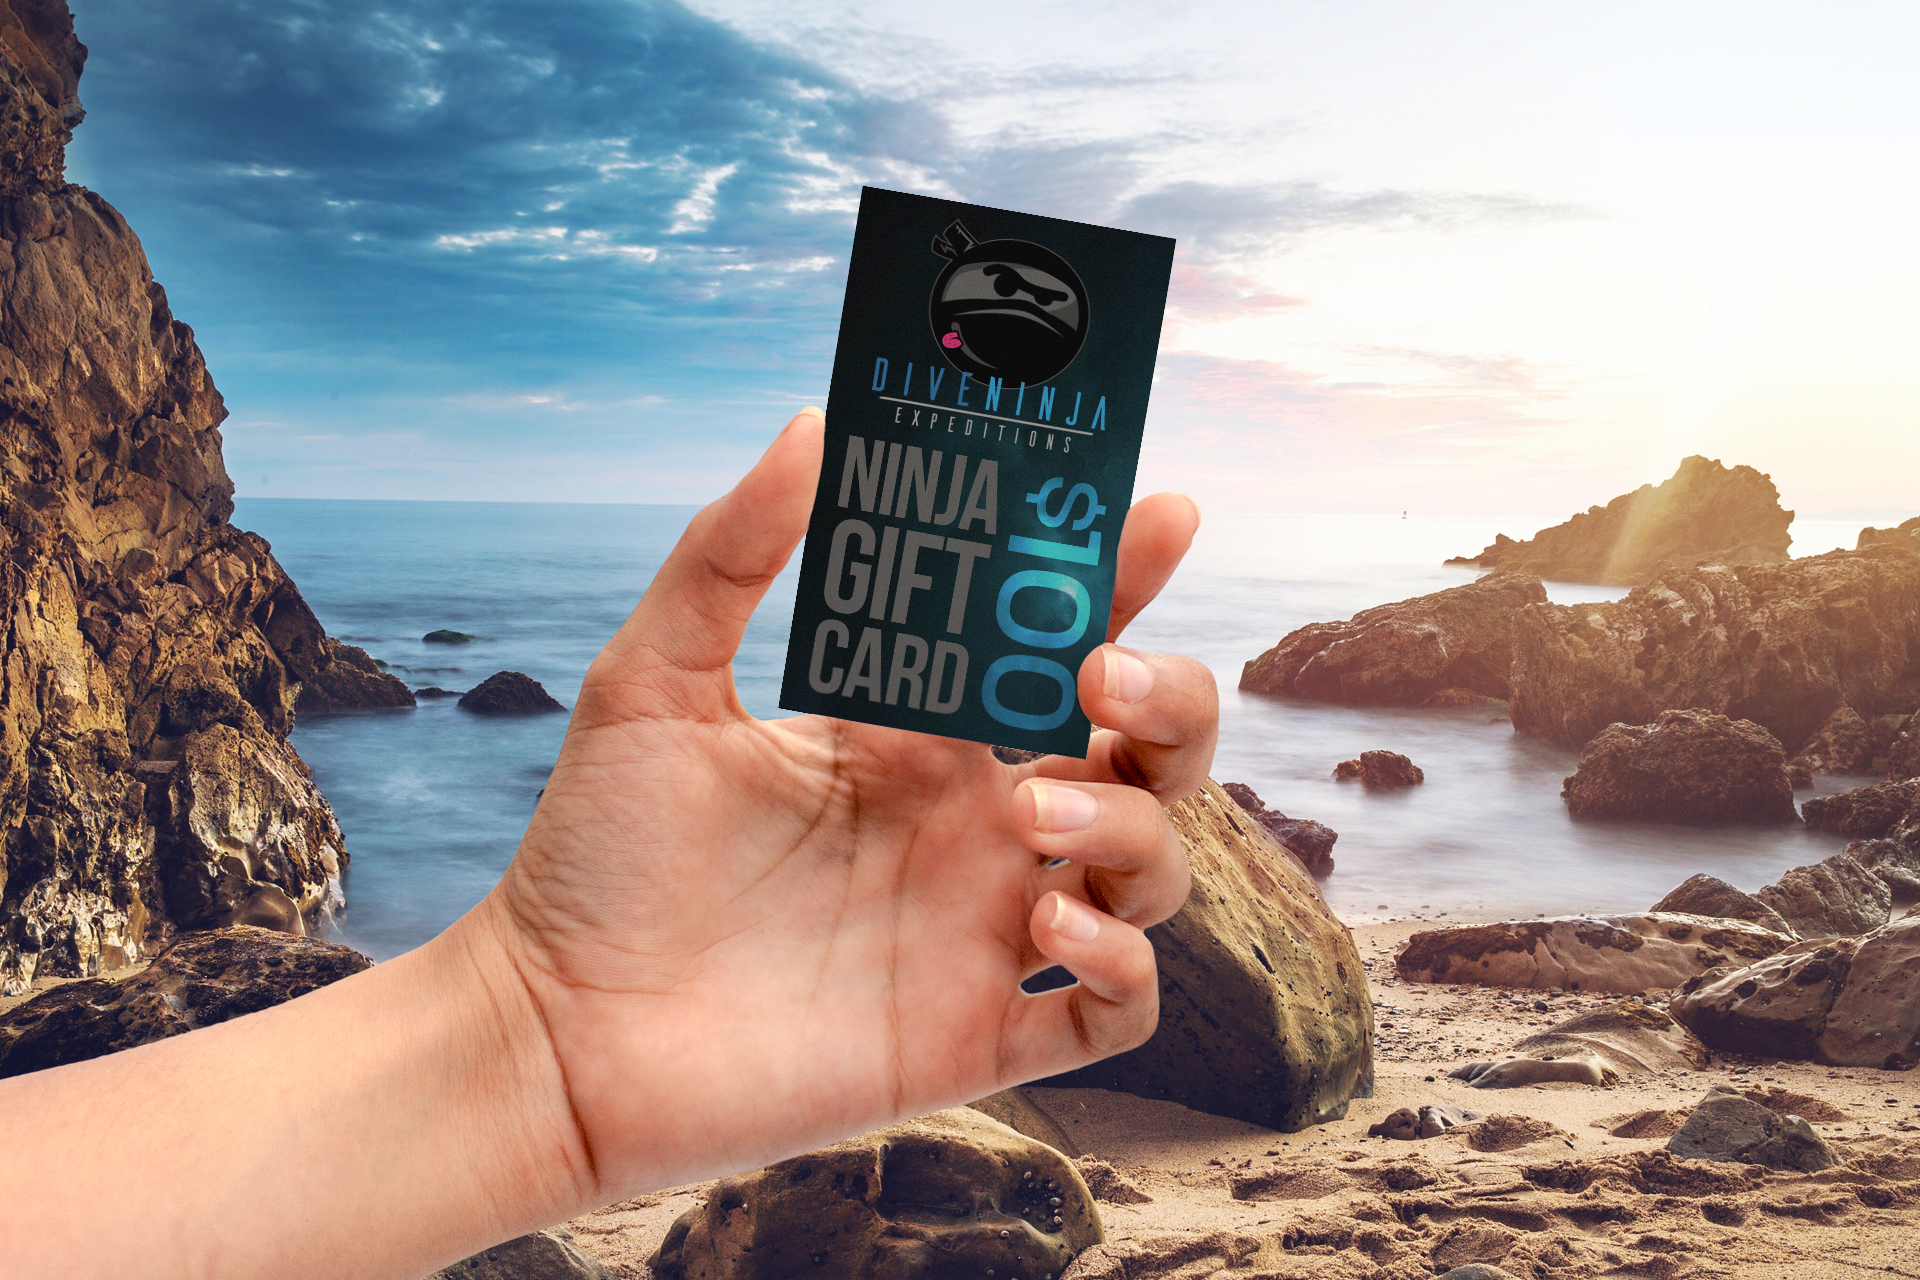 Scuba Diving Freediving Gift Cards